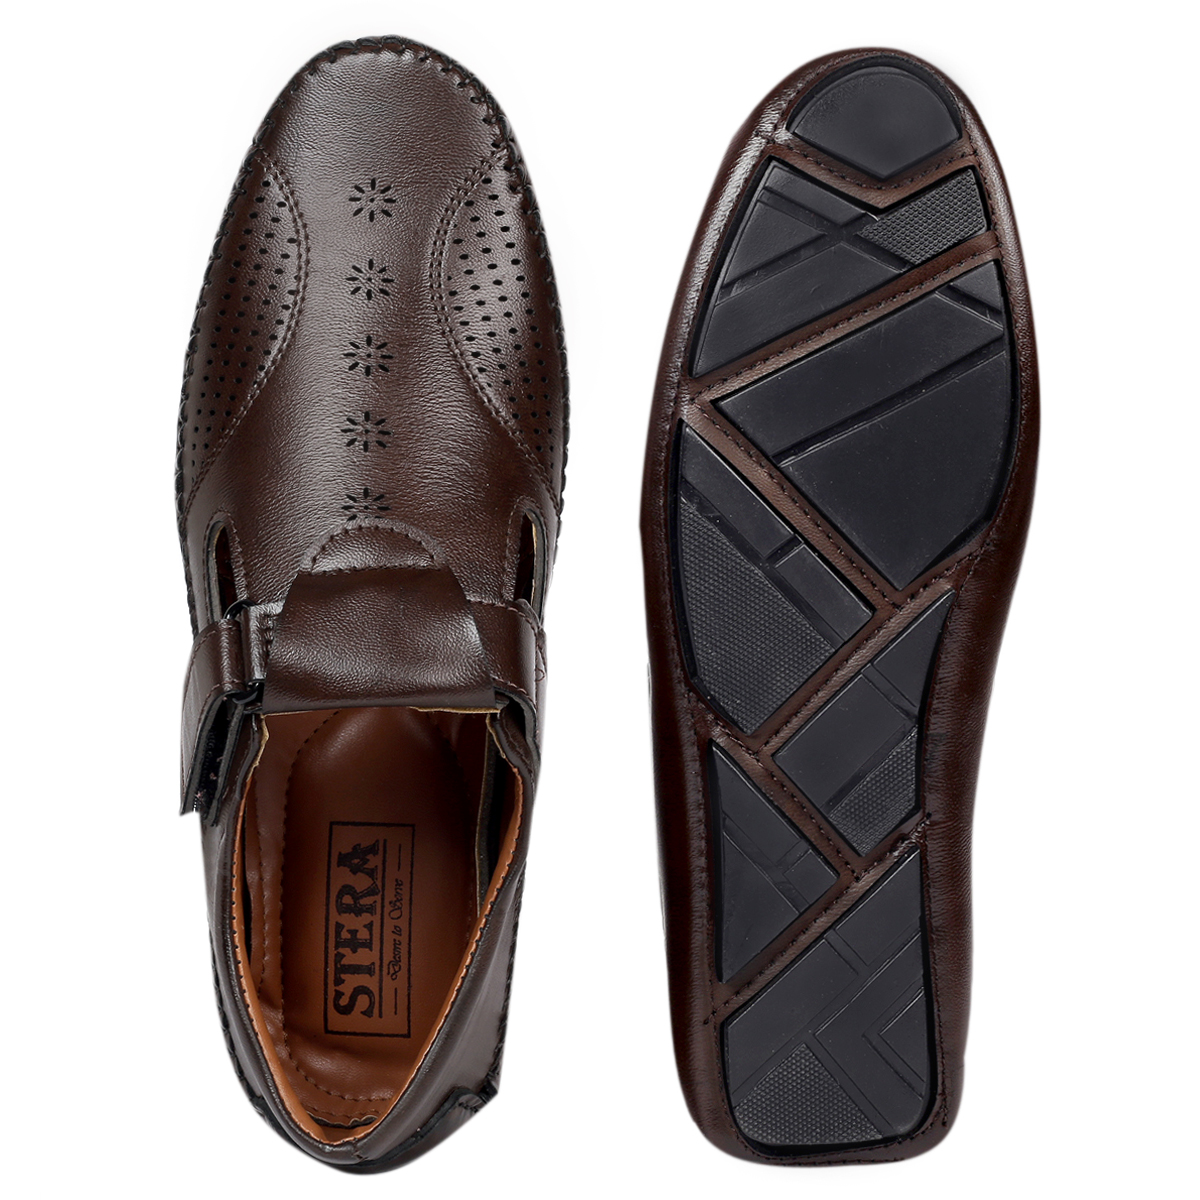 STERA MEN'S TRADITIONAL & STYLISH DRIVING ROMAN SANDAL WITH BLASTER SYNTHETIC.NHT-DRV-SAN-7002-BROWN (BROWN,6-10,8)